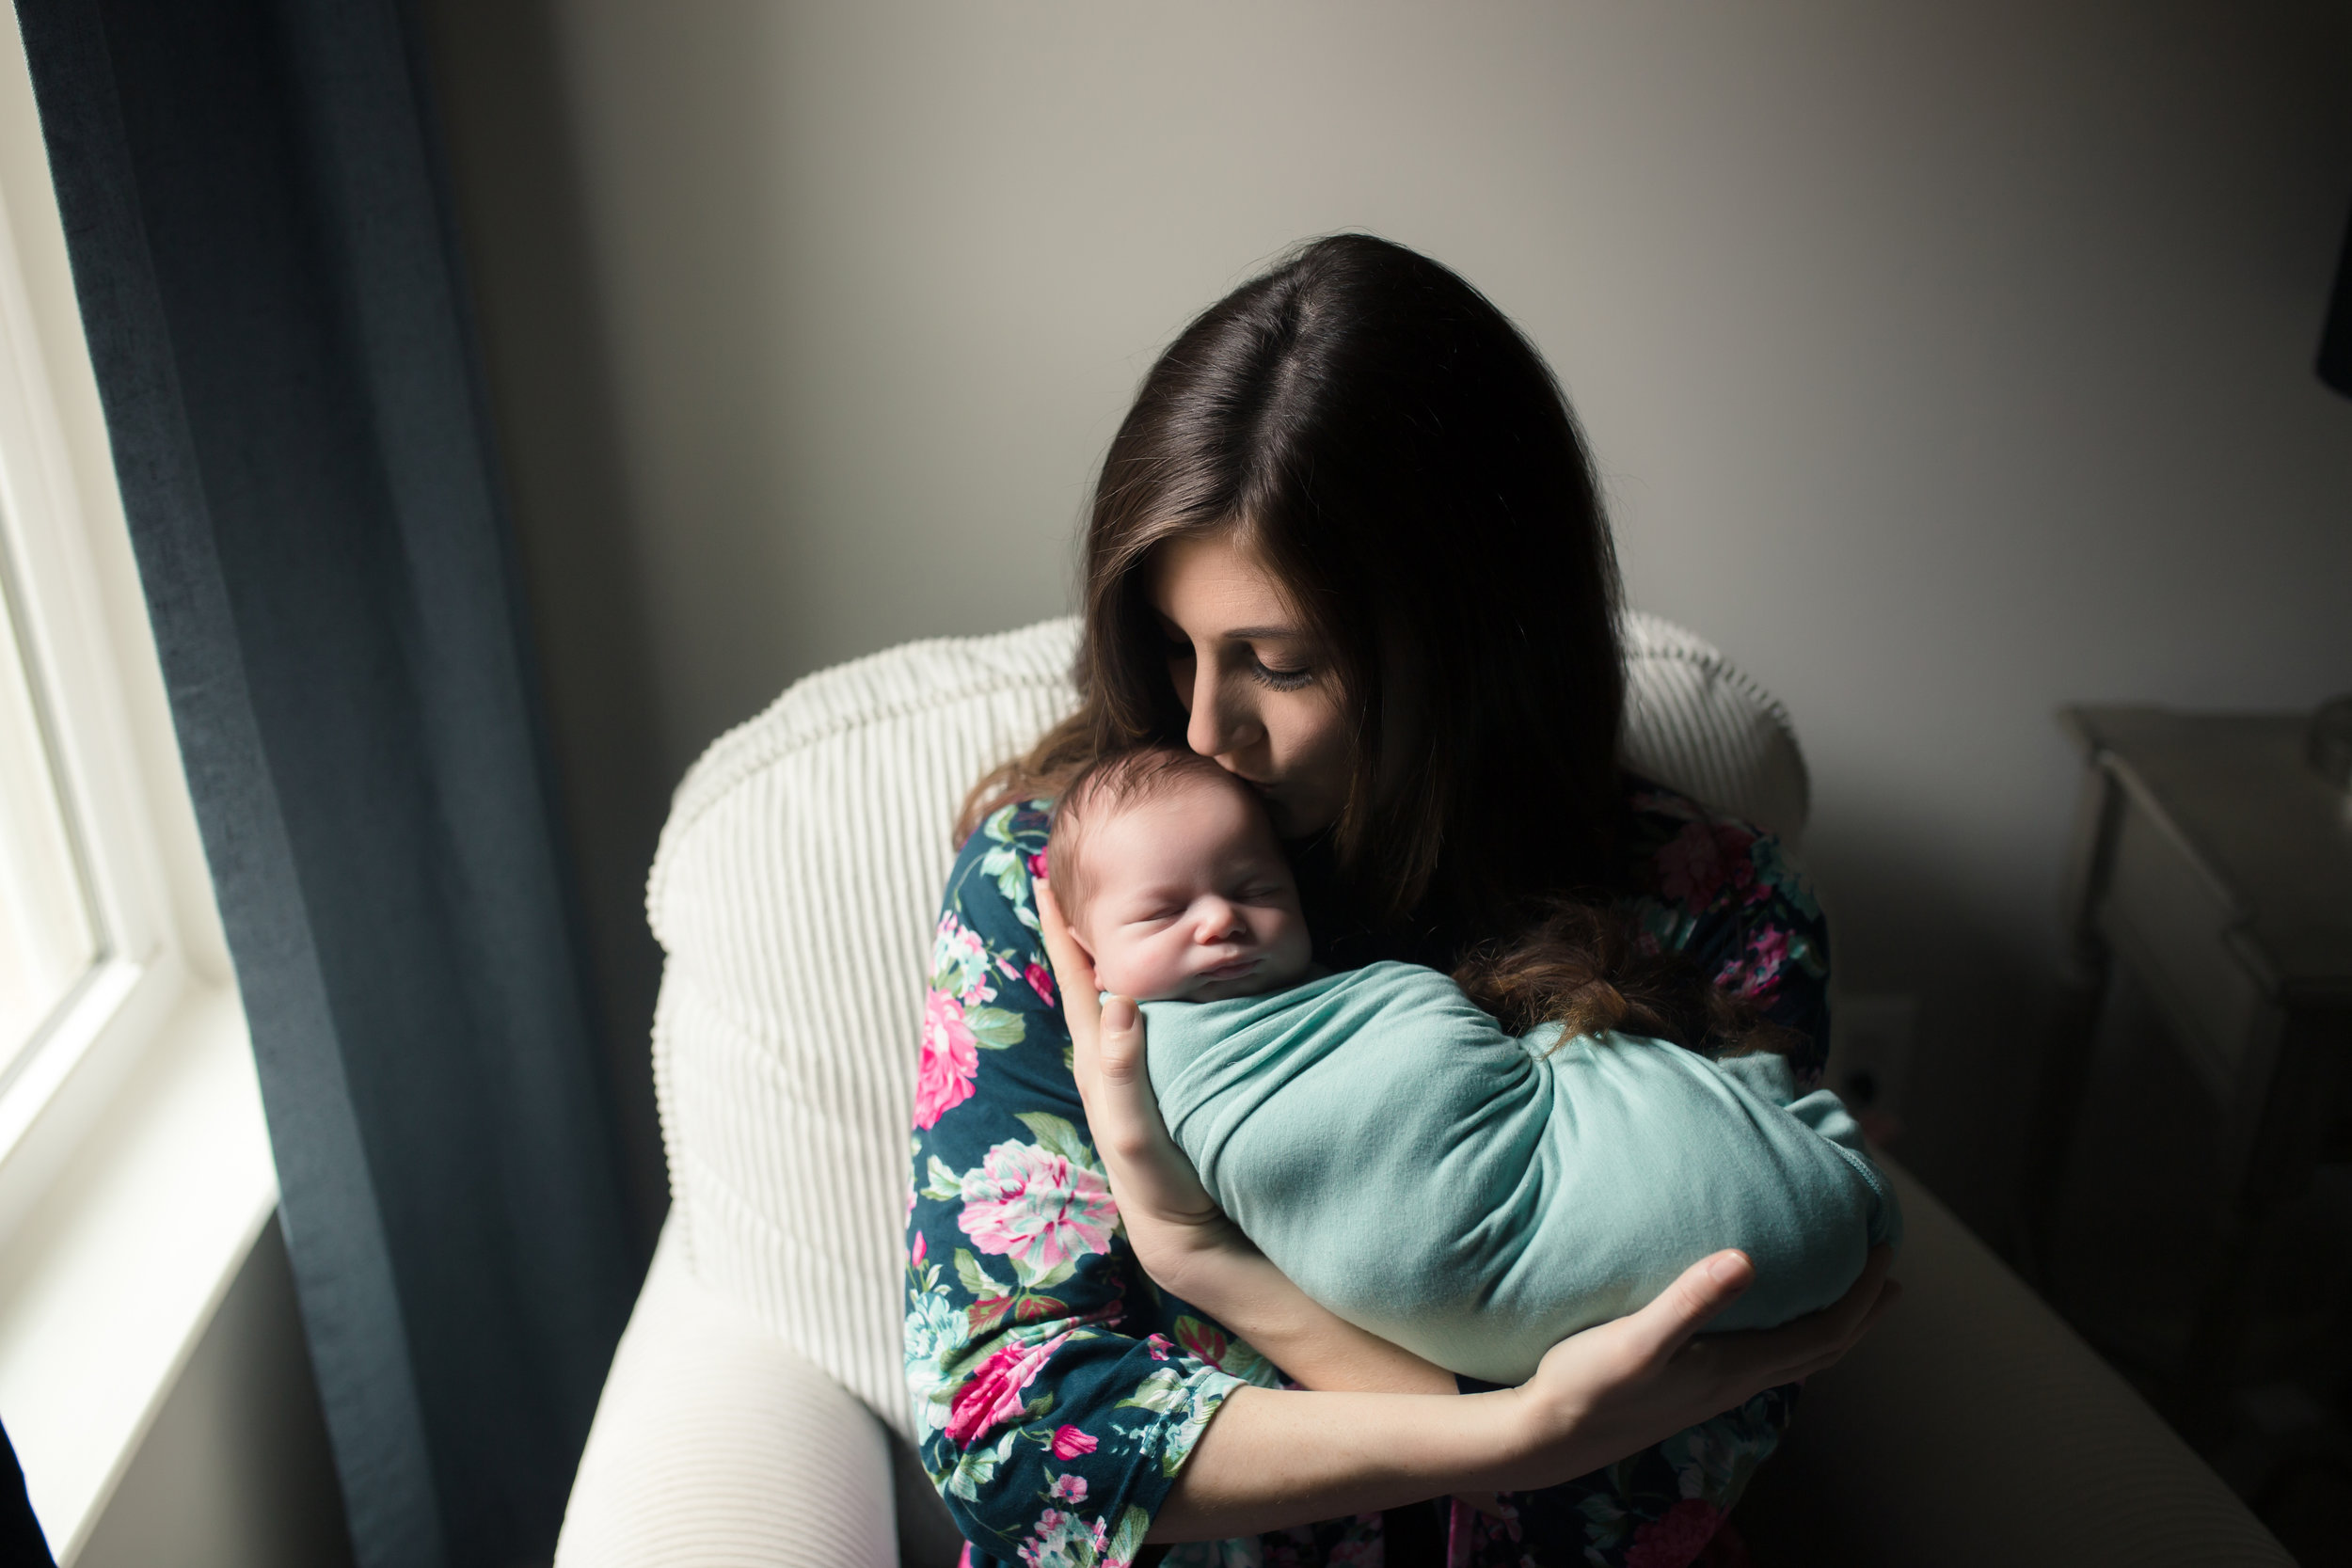 Rowan_Newborn_Session_077.jpg